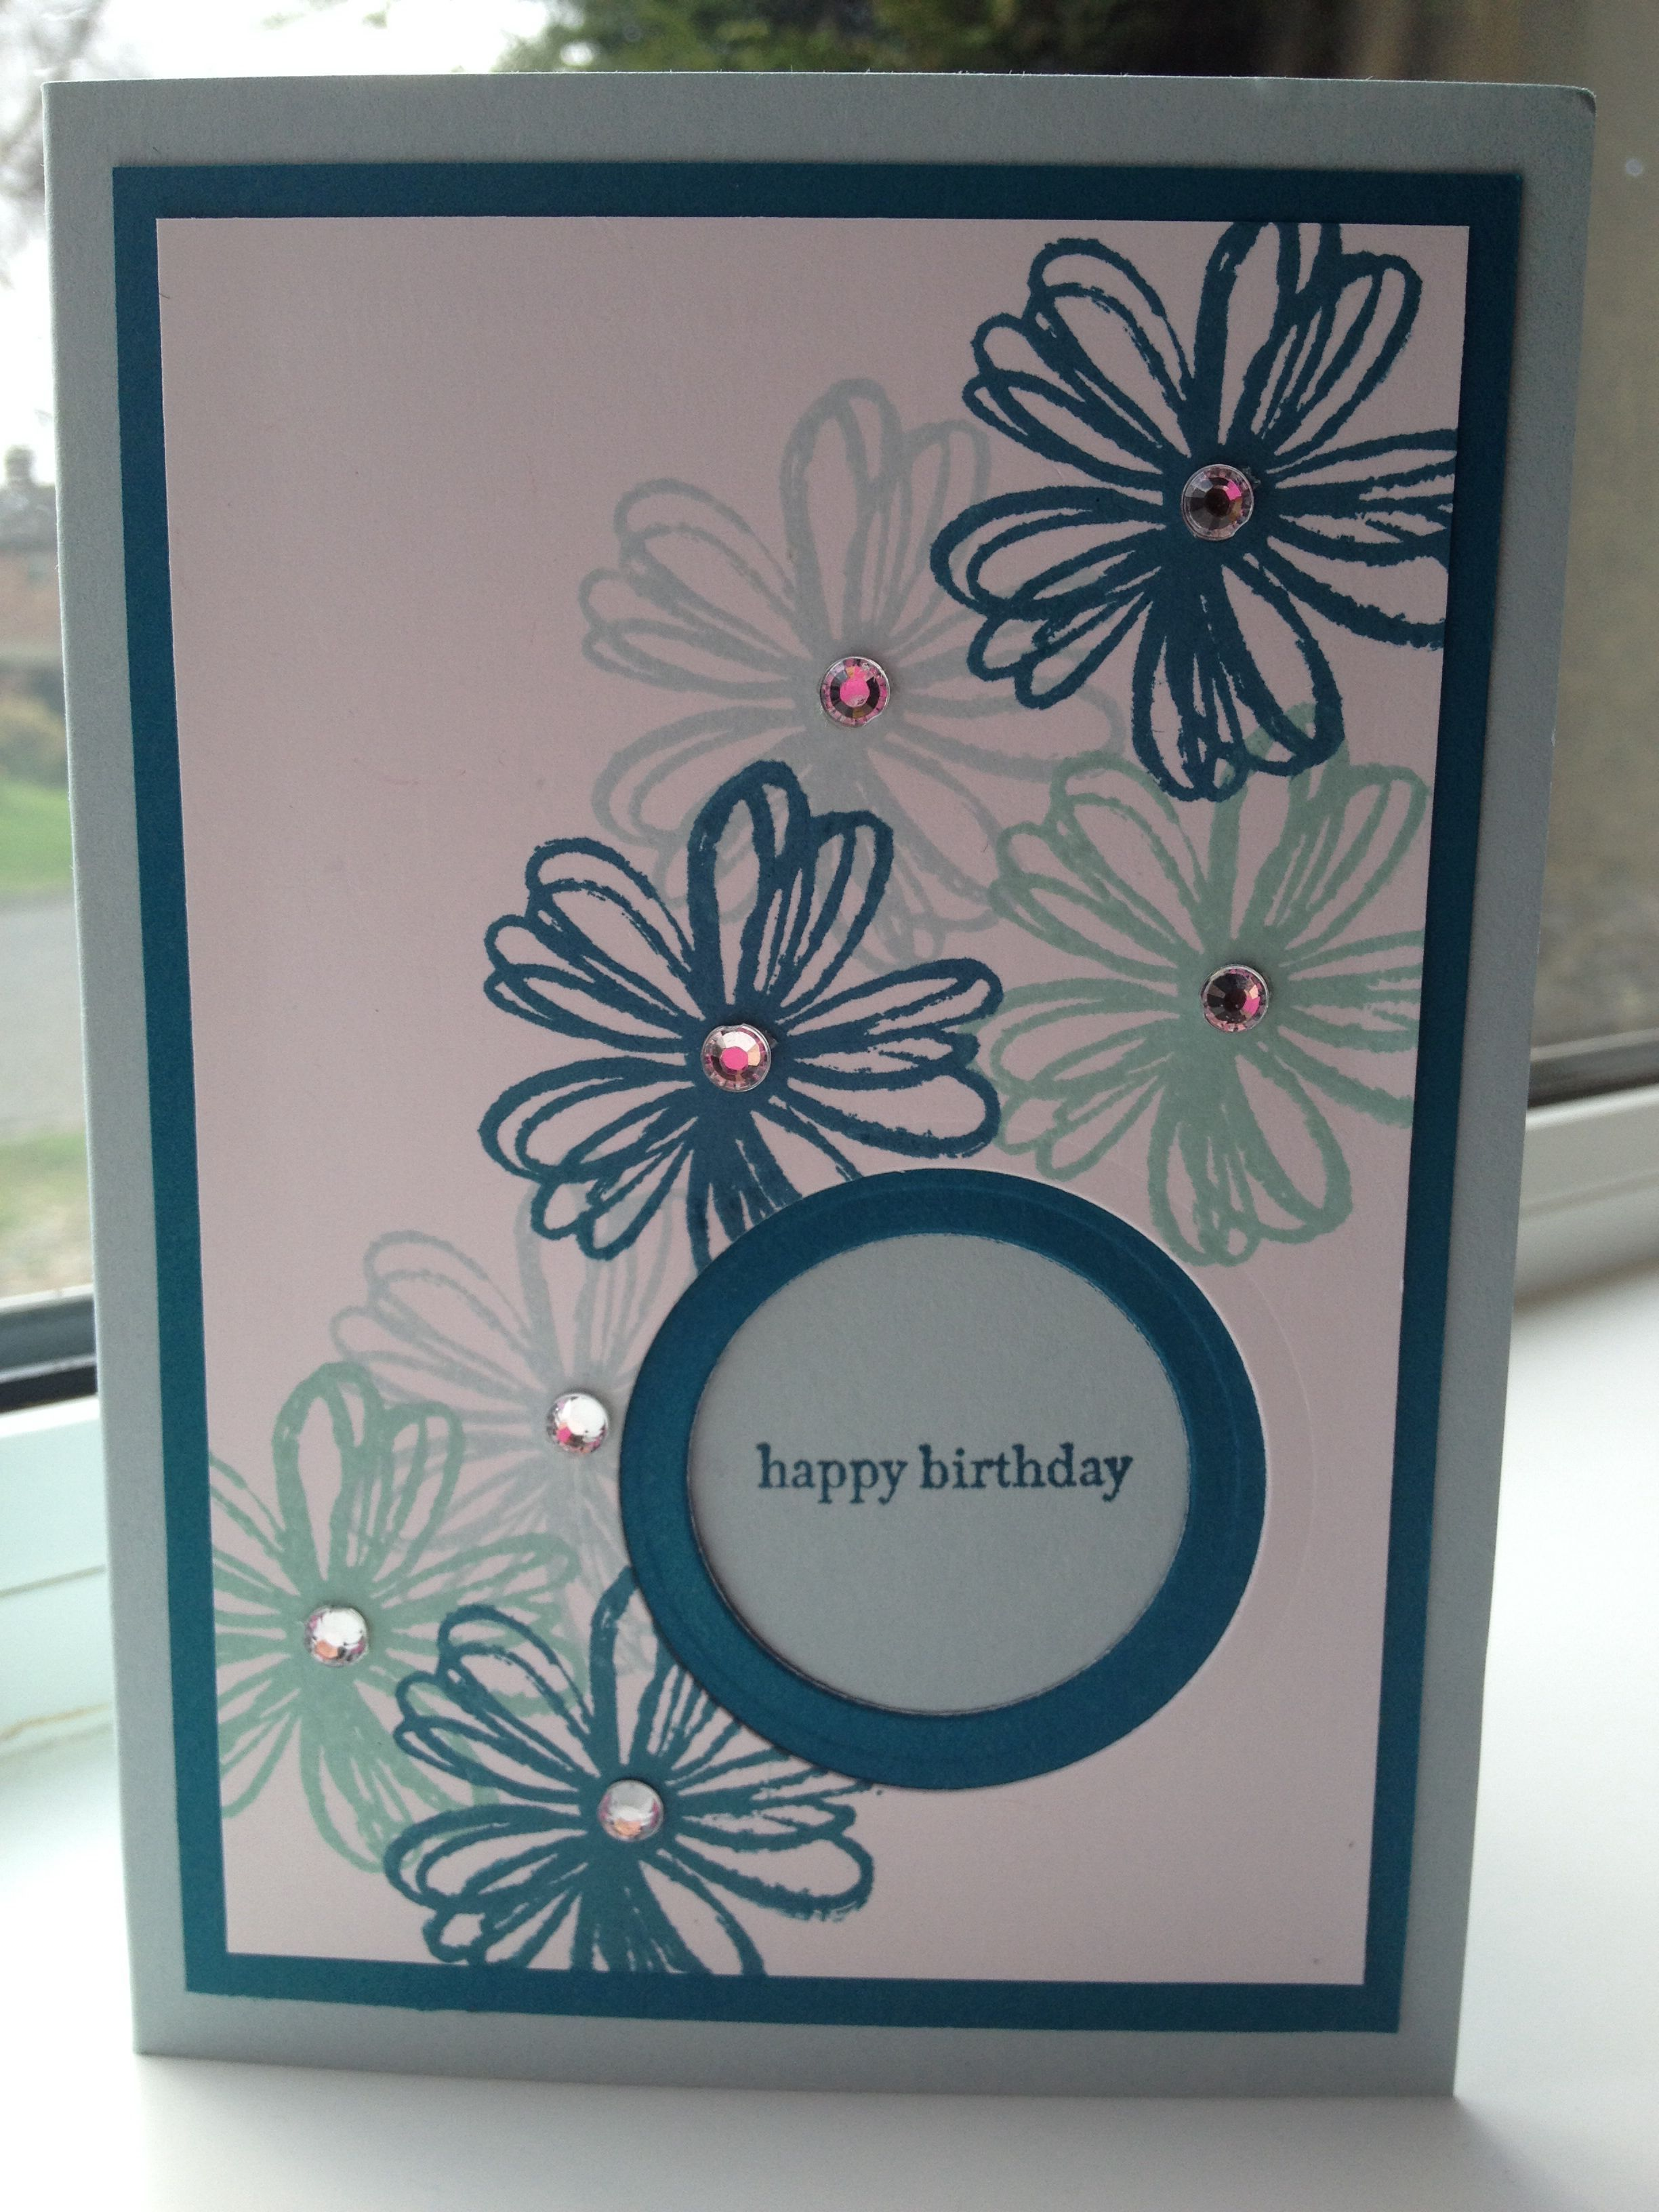 Pin By Todd Deven Smith On Cards Birthday Pinterest Cards